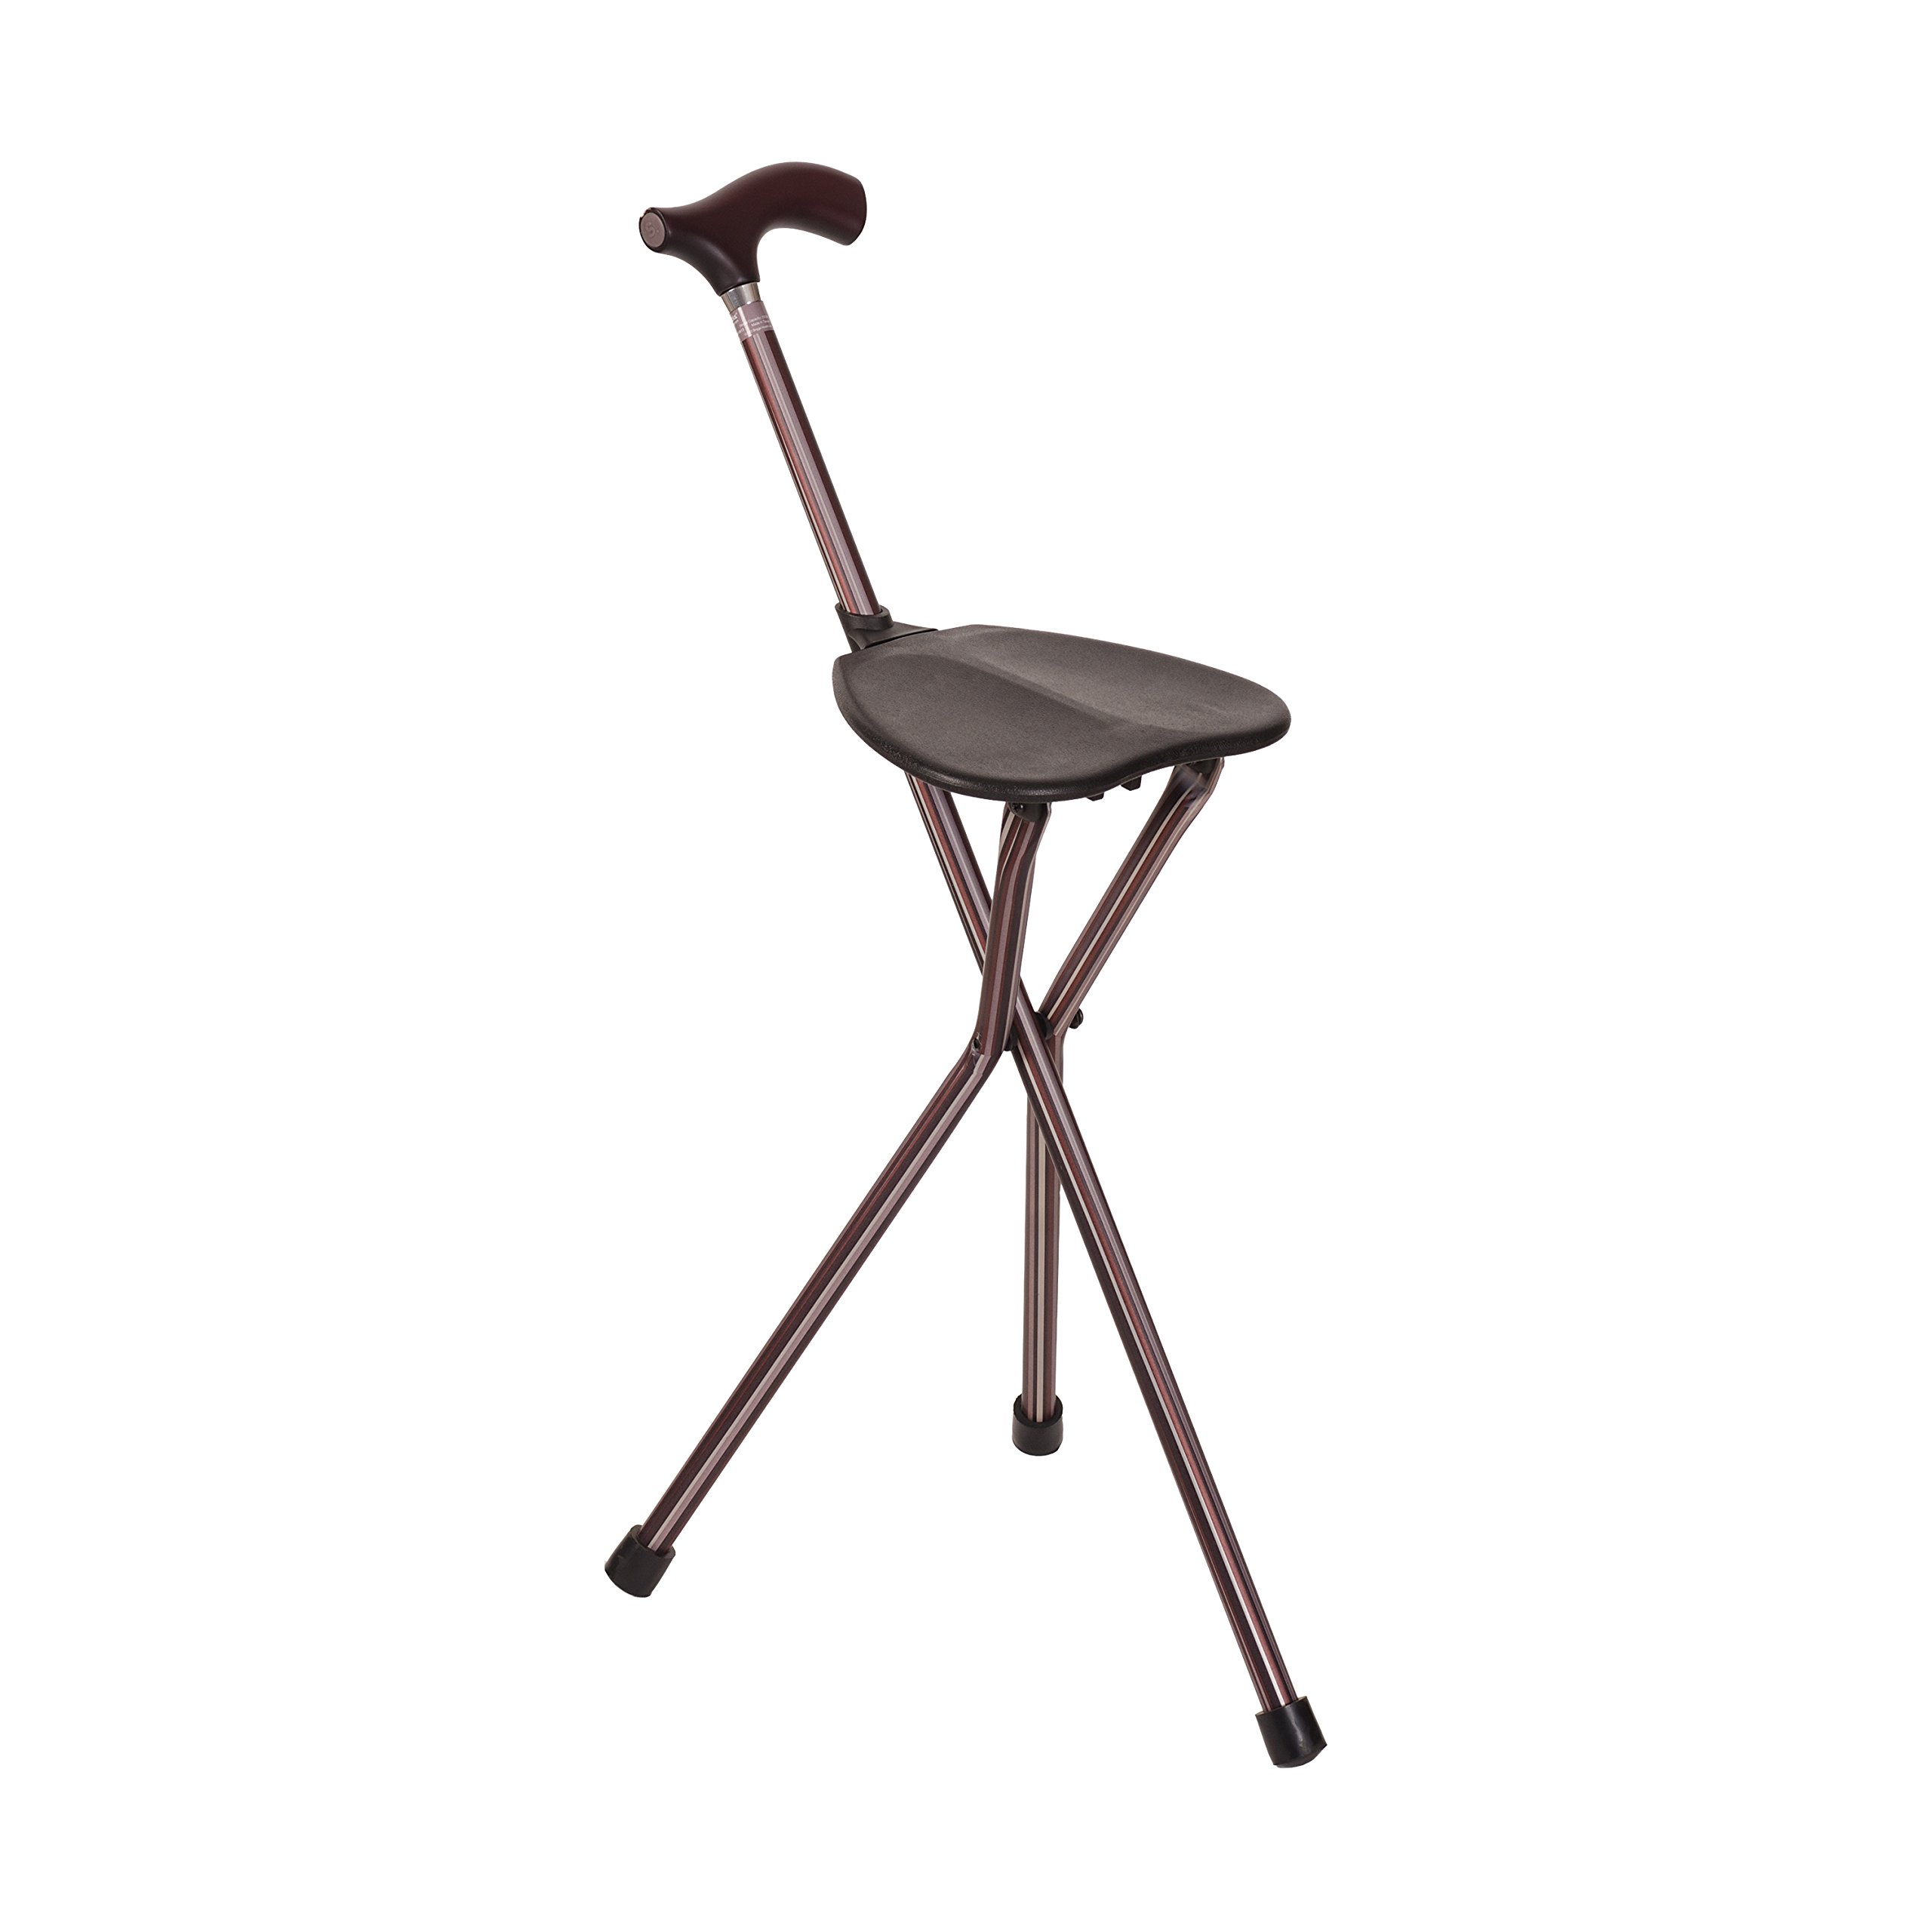 Walking Stick Chair Combo, Folding Walking Cane, Switch Sticks Lightweight Adjustable Medical Foldable Cane with Seat, Kensington by Switch Sticks